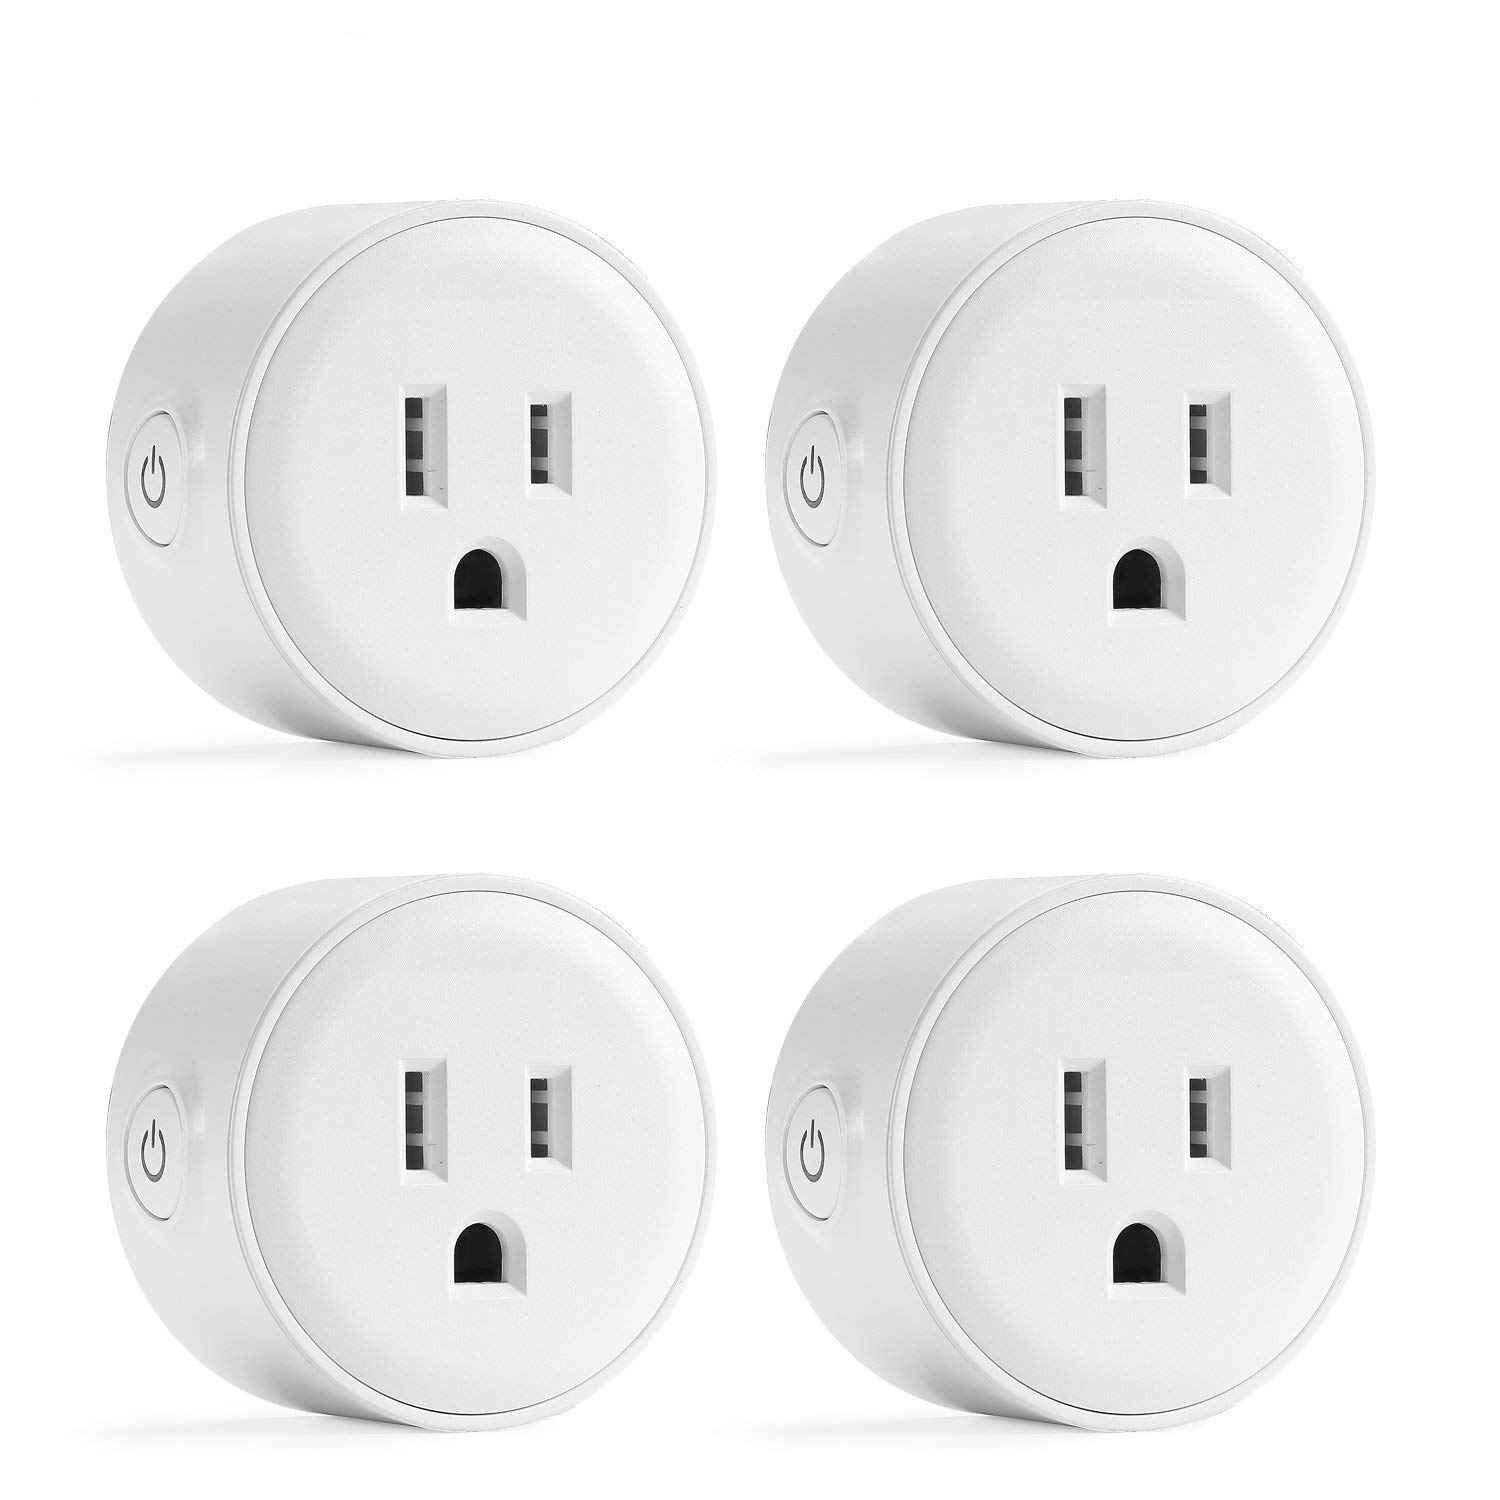 Wifi Smart Plug Mini, Astrodot Smart Home Power Control Socket, Remote Control Your Household Equipment from Everywhere, No Hub Required, Compatible with Alexa, Echo Dot & Google Home (4)